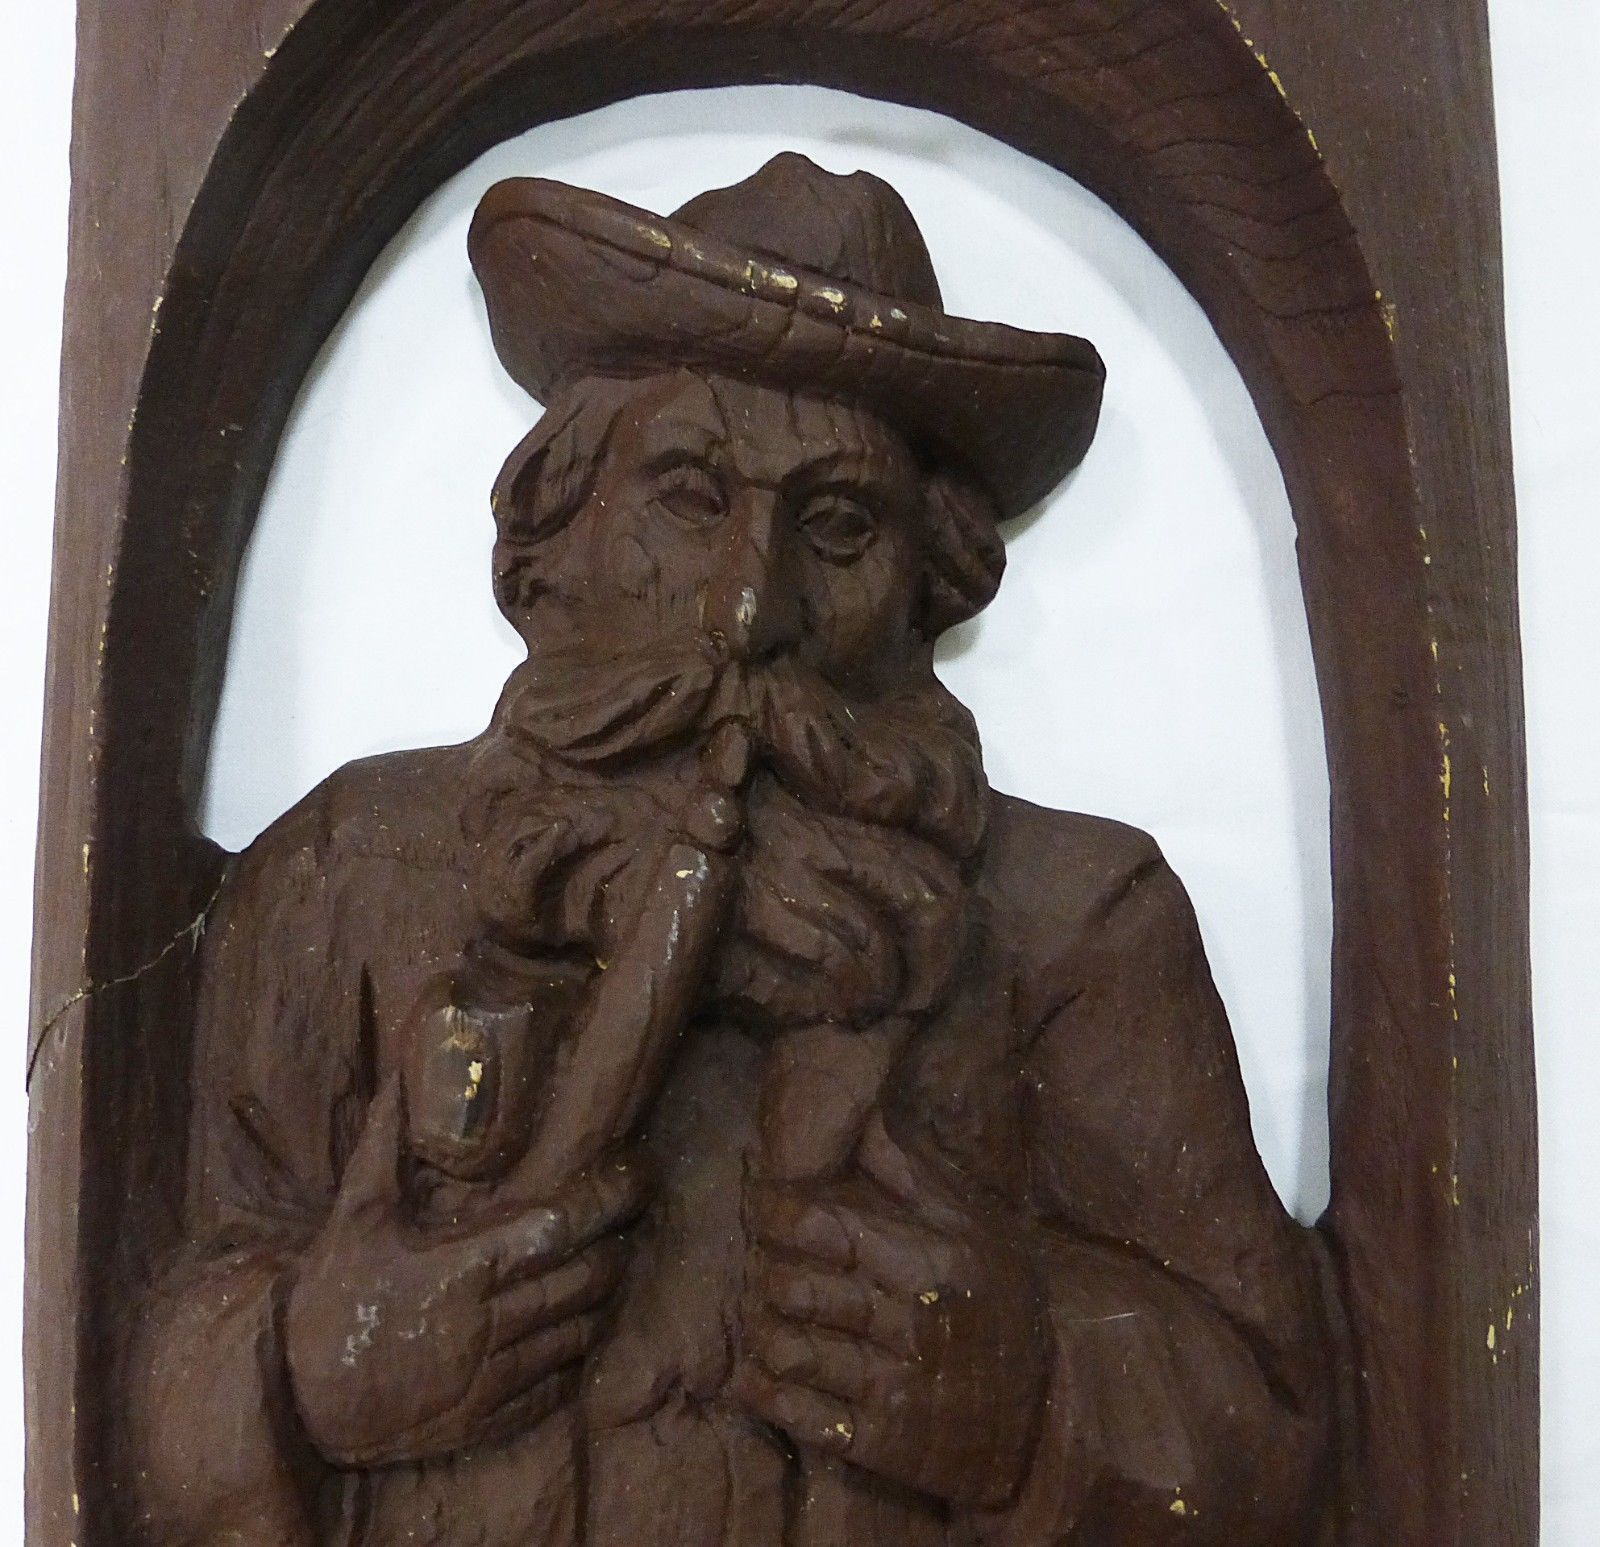 "Wood like carving picture man smoking pipe 15.5"" x  9"" material unknow"